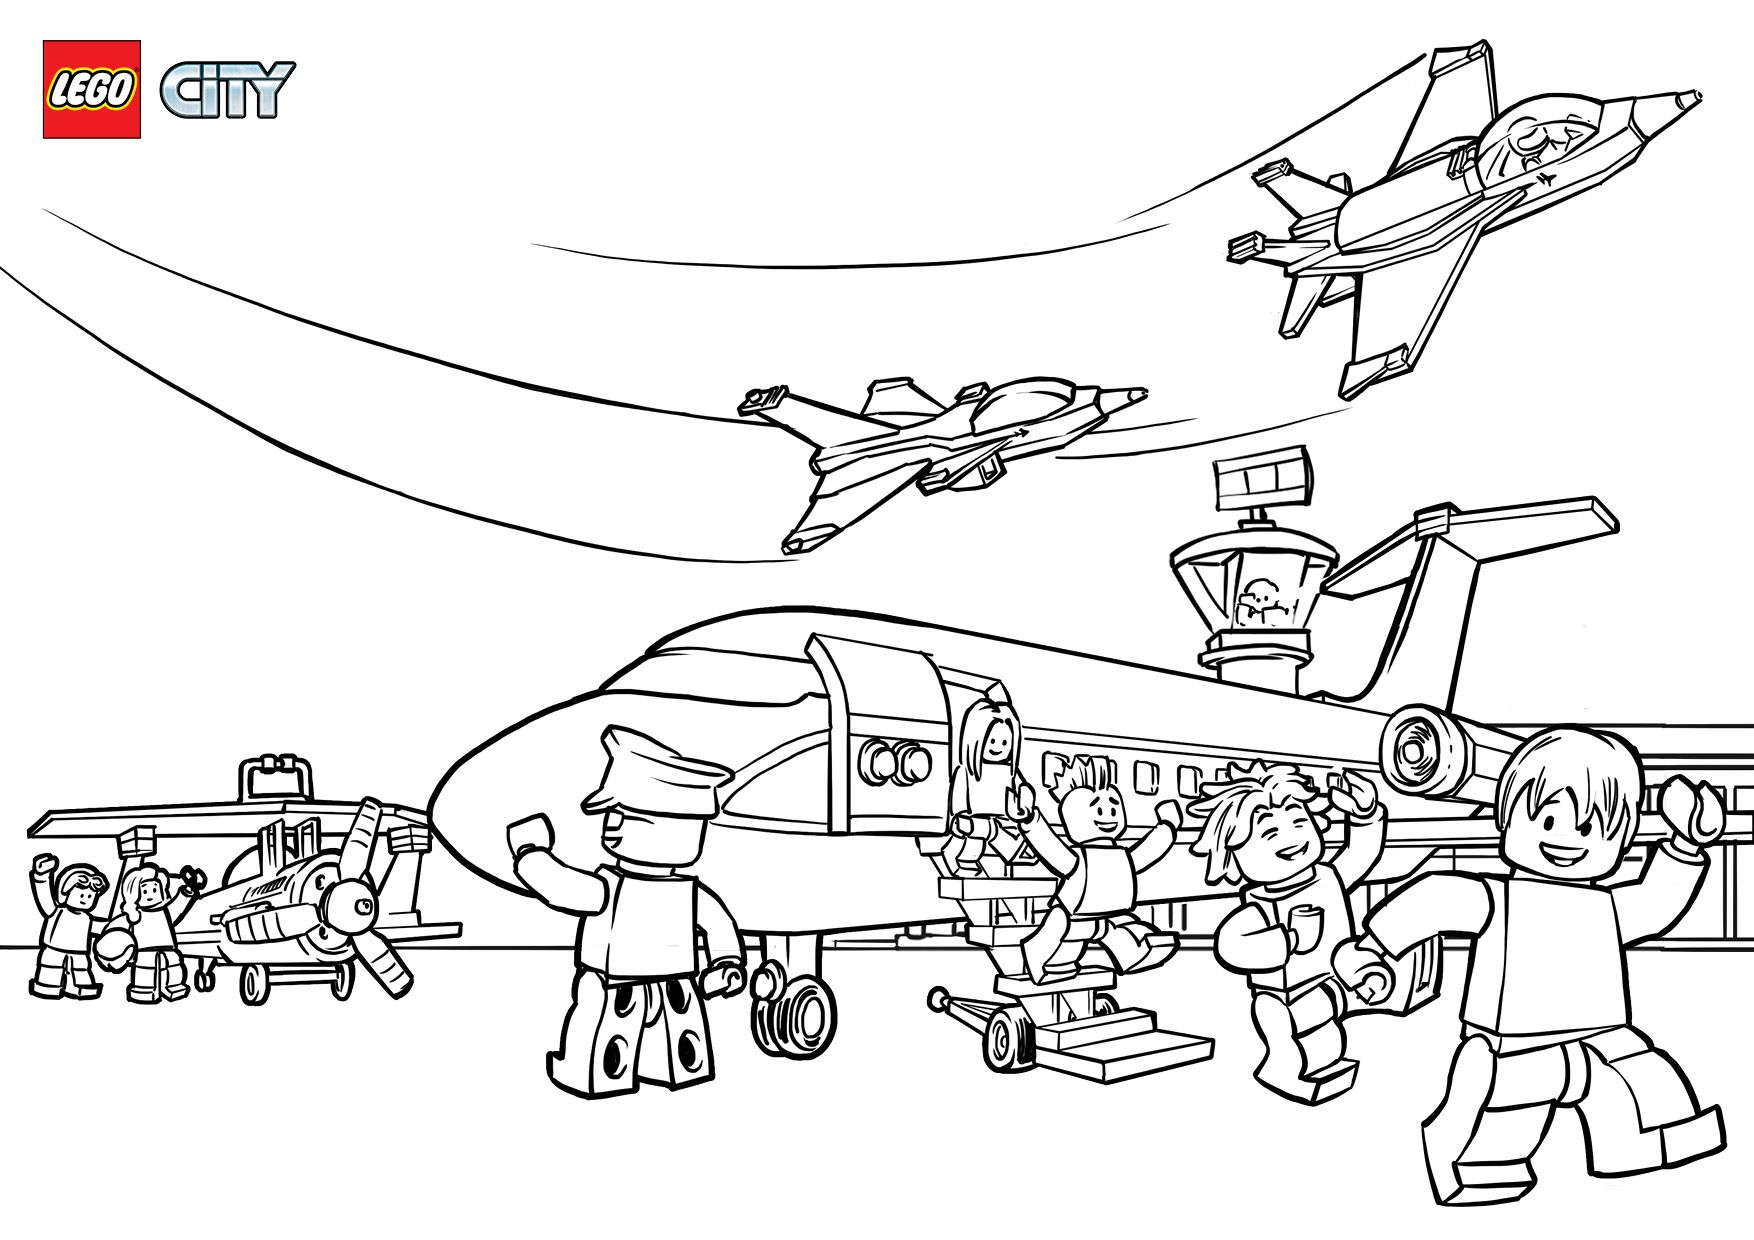 Lego City Airport Coloring Pages